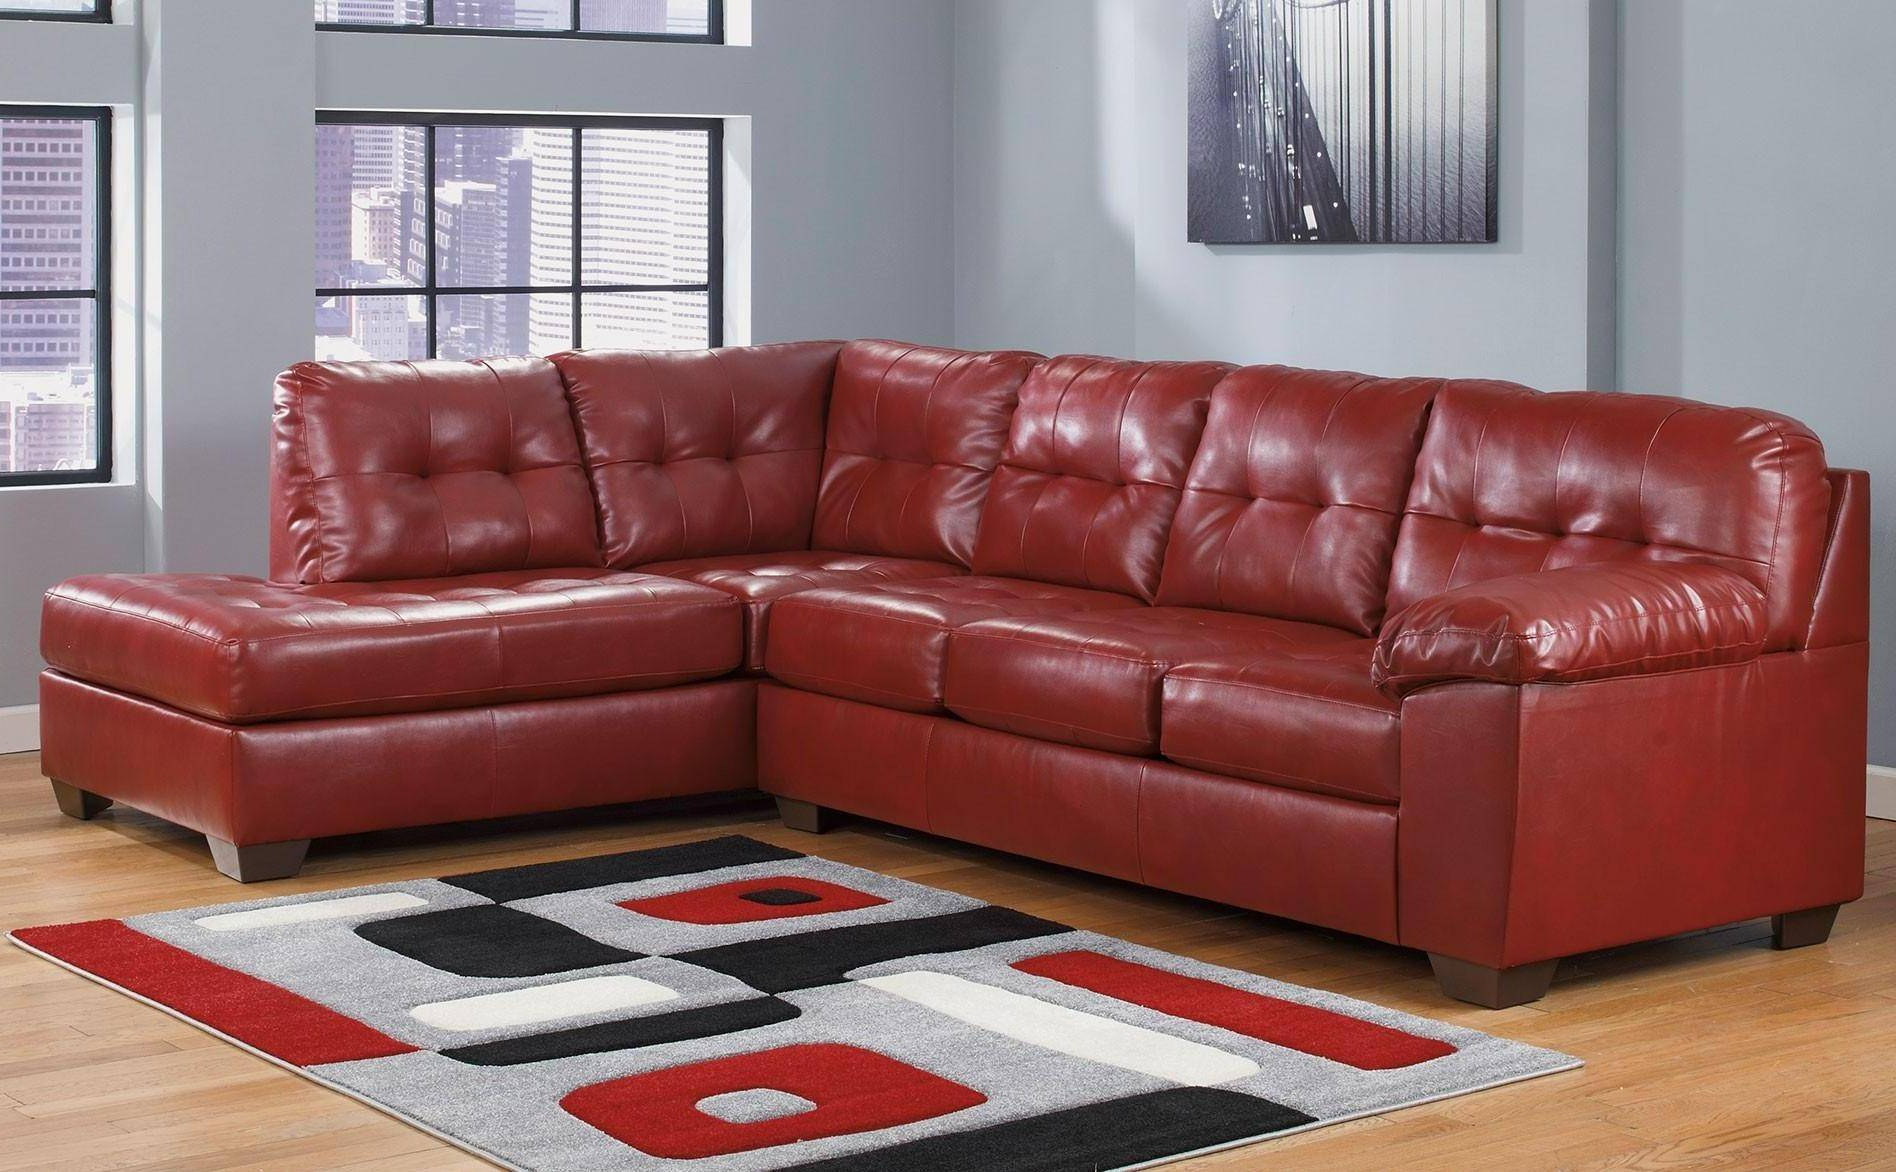 Buy Ashley Alliston Sectional Sofa Right Hand Chase In Inside Most Current Hannah Right Sectional Sofas (View 17 of 25)